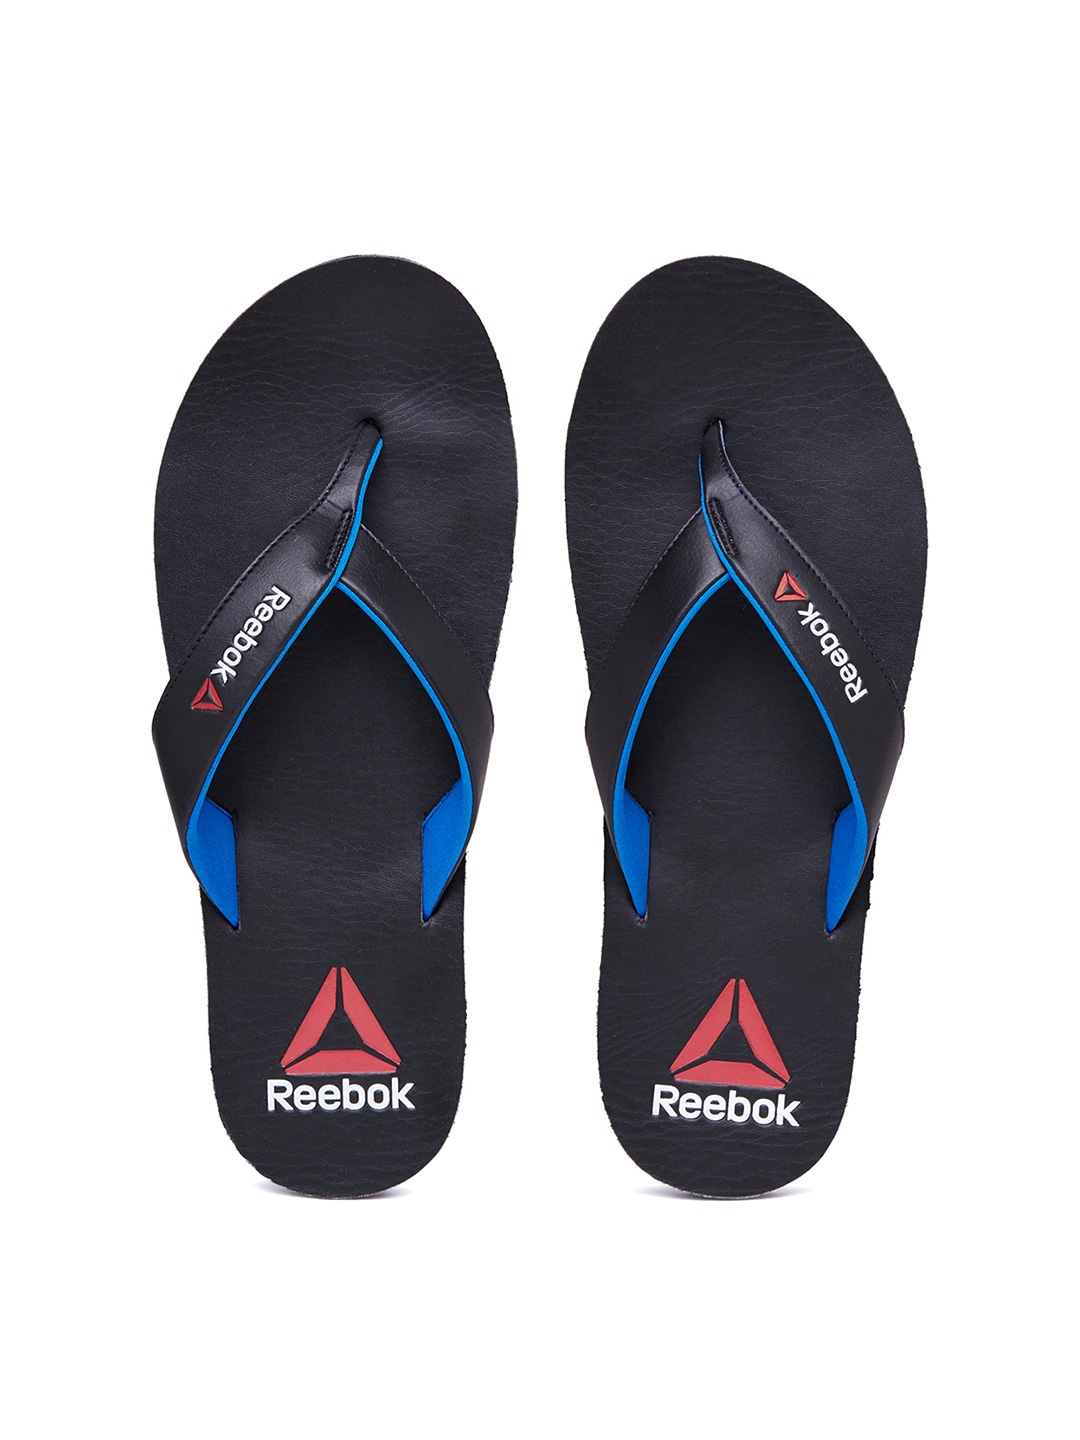 1c9da1cf748 Reebok bd3878 Men Black Advent Flip Flops - Best Price in India ...